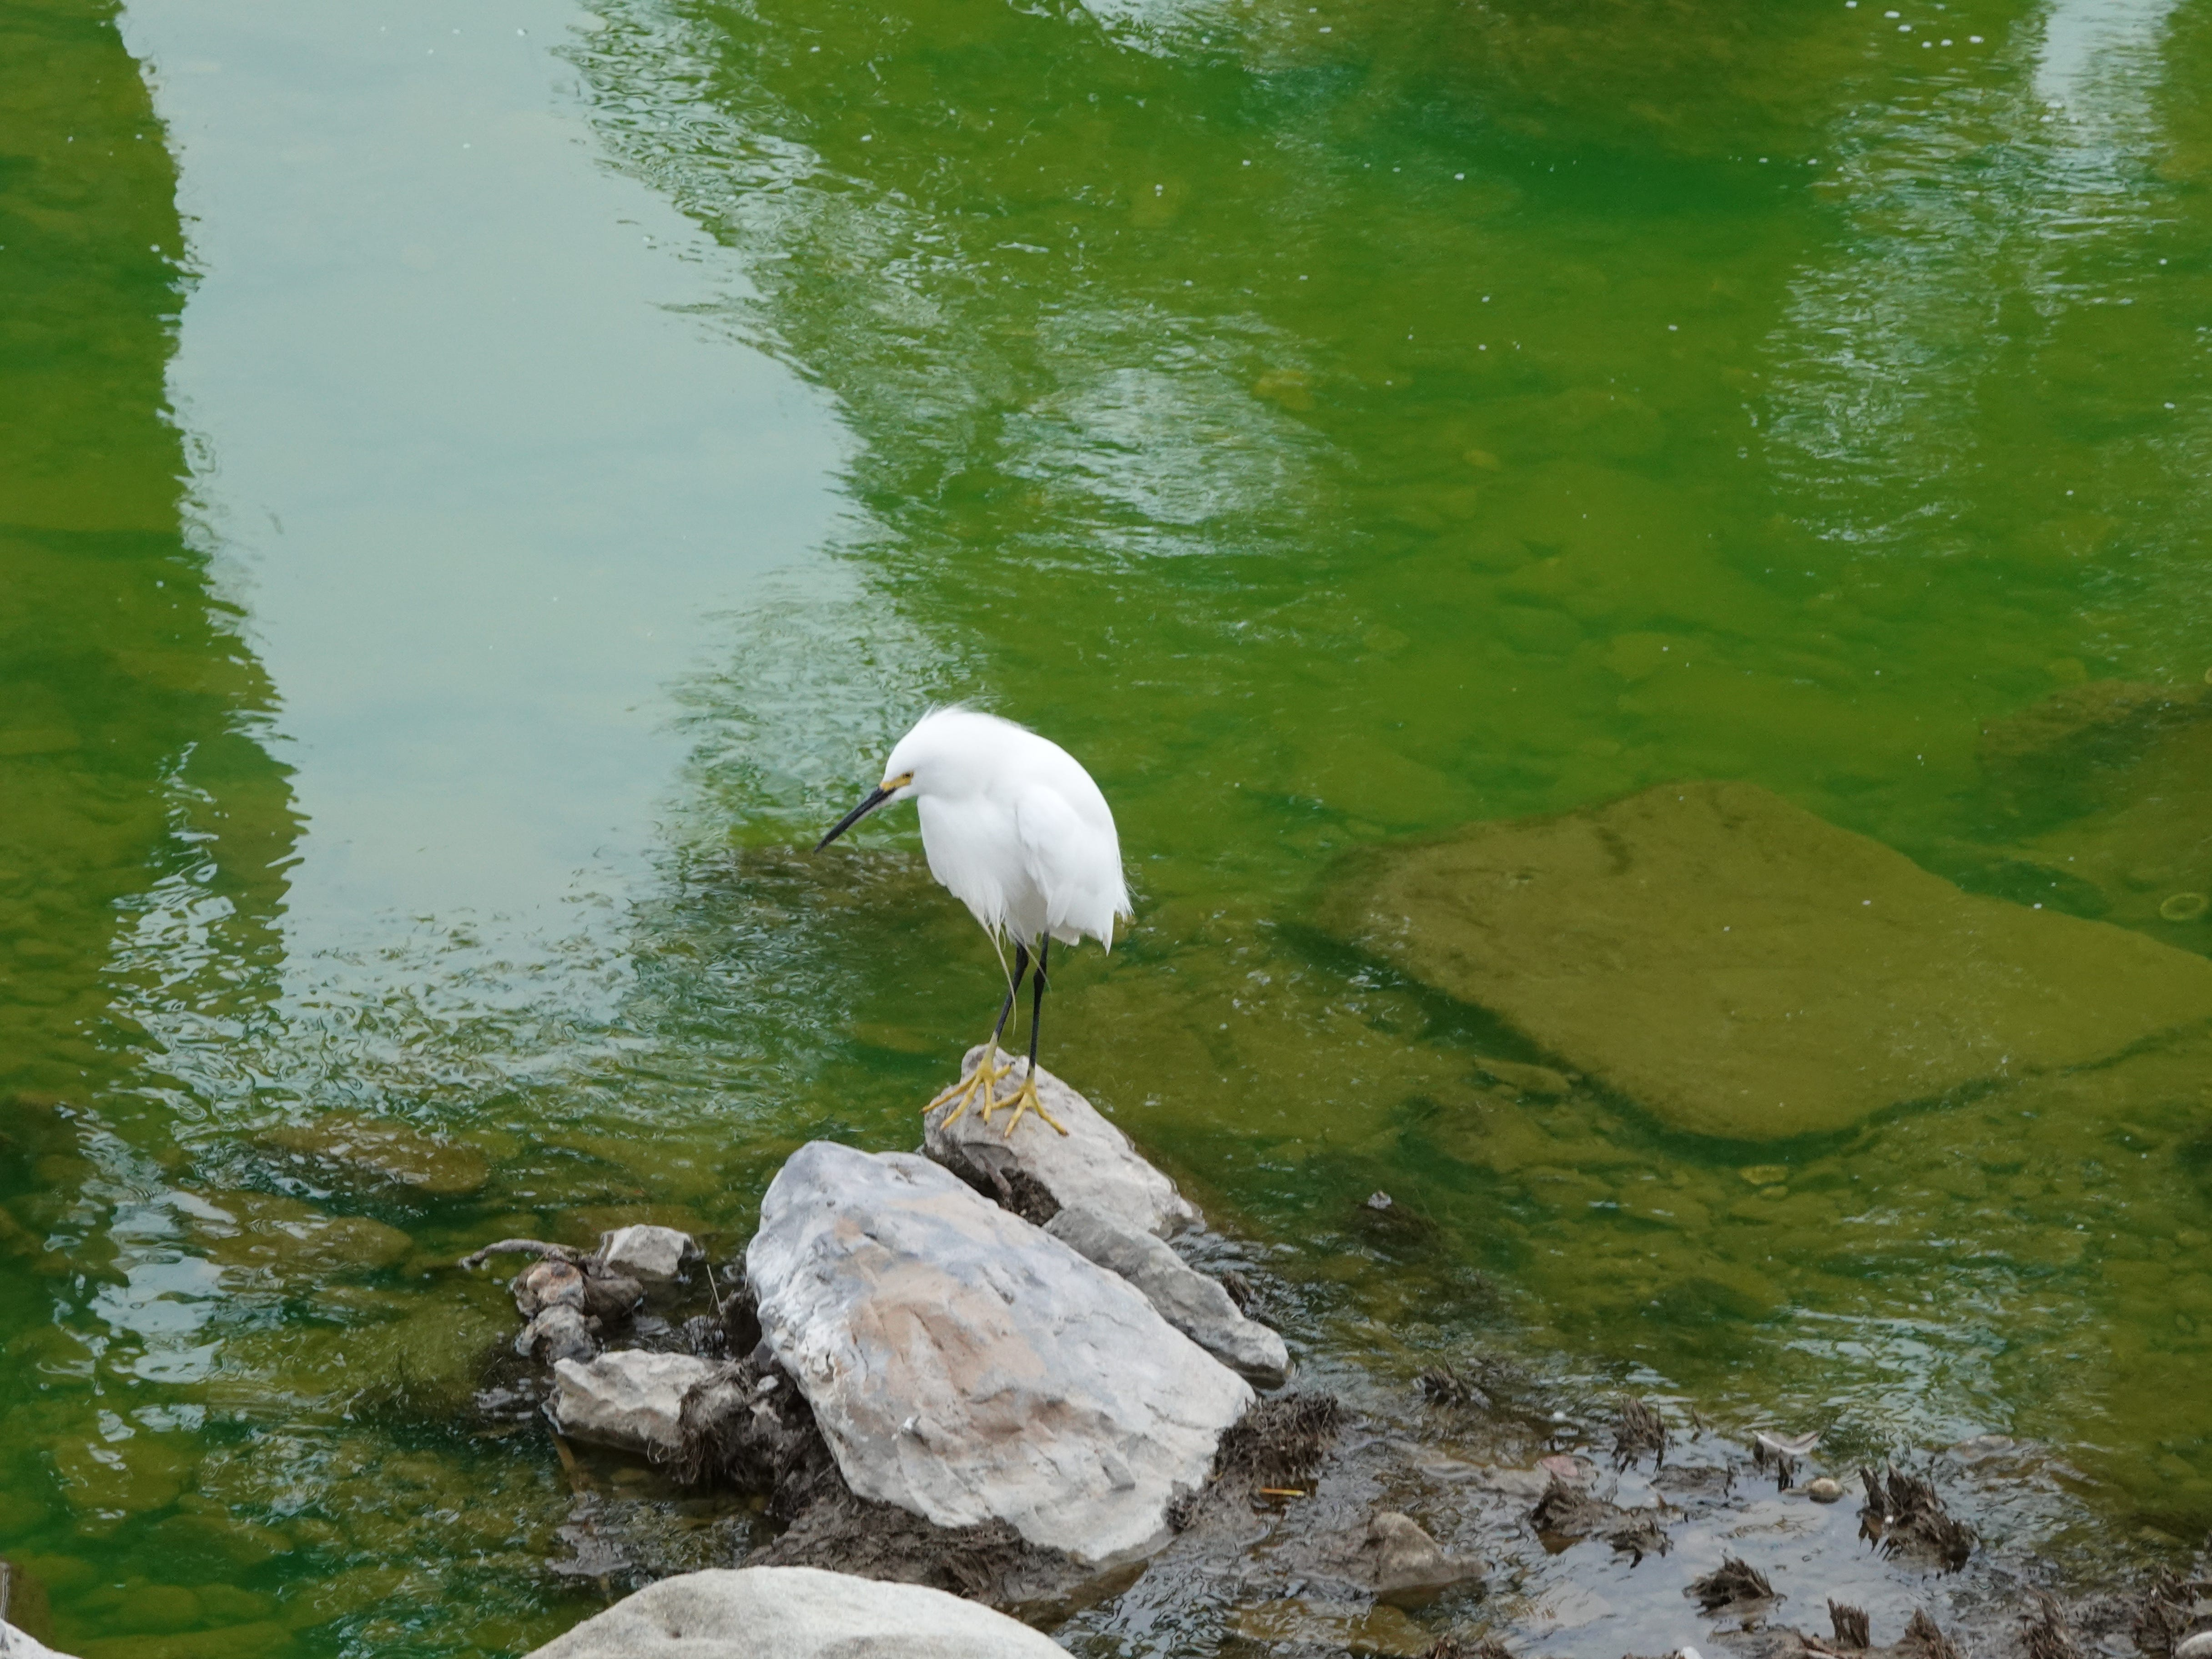 A snowy egret stands above green water in the Arroyo Simi Monday afternoon. Authorities determined a substance that spilled into the waterway was not hazardous.